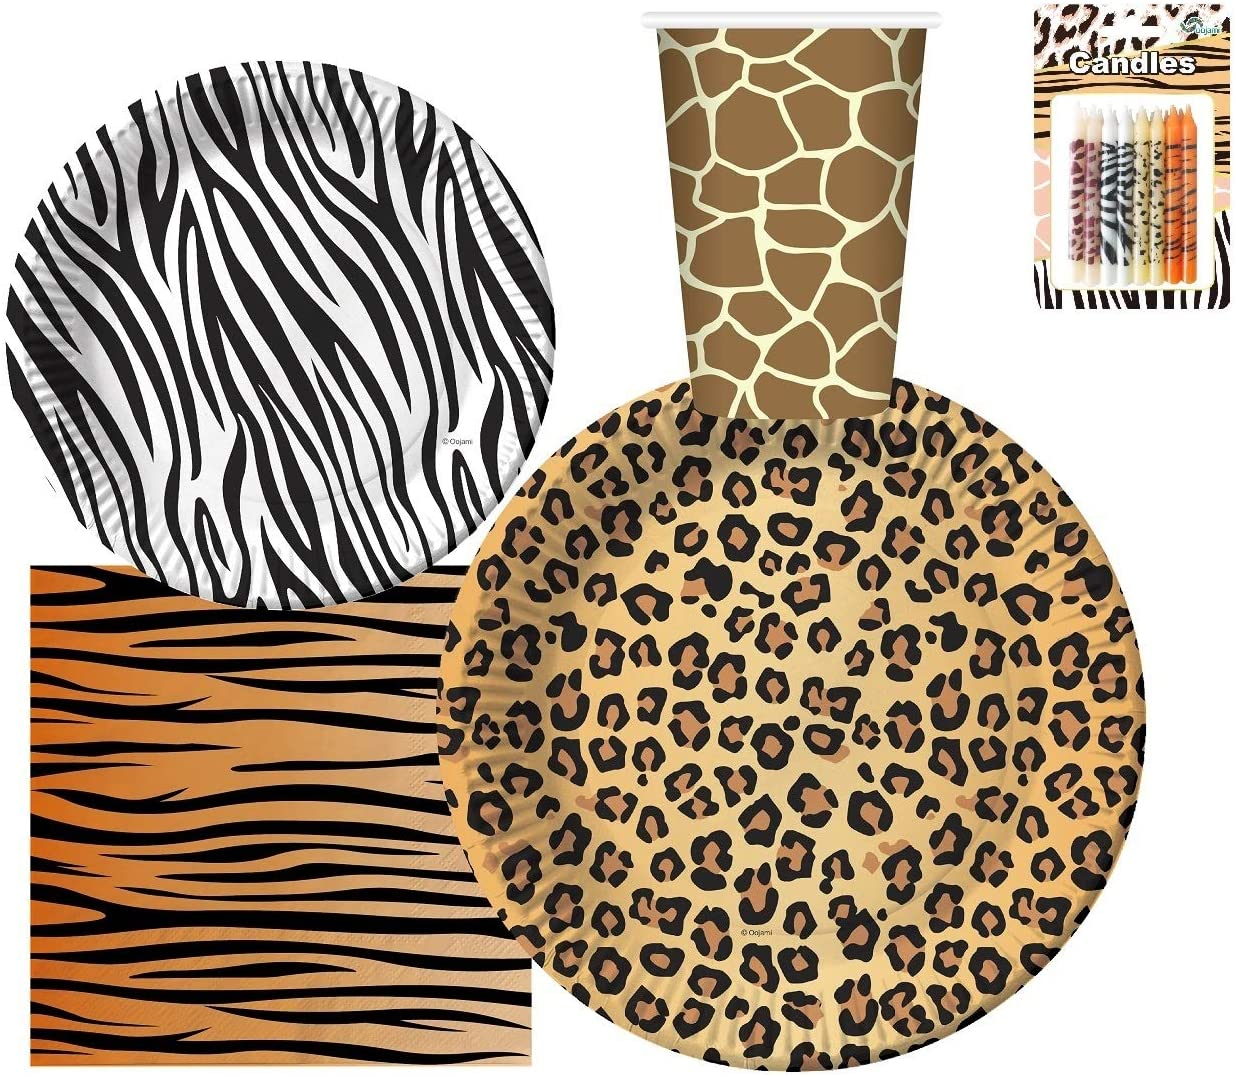 "Serves 30 | Complete Party Pack | Jungle Safari Zoo Animal Print Party Supplies | 9"" Dinner Paper Plates 